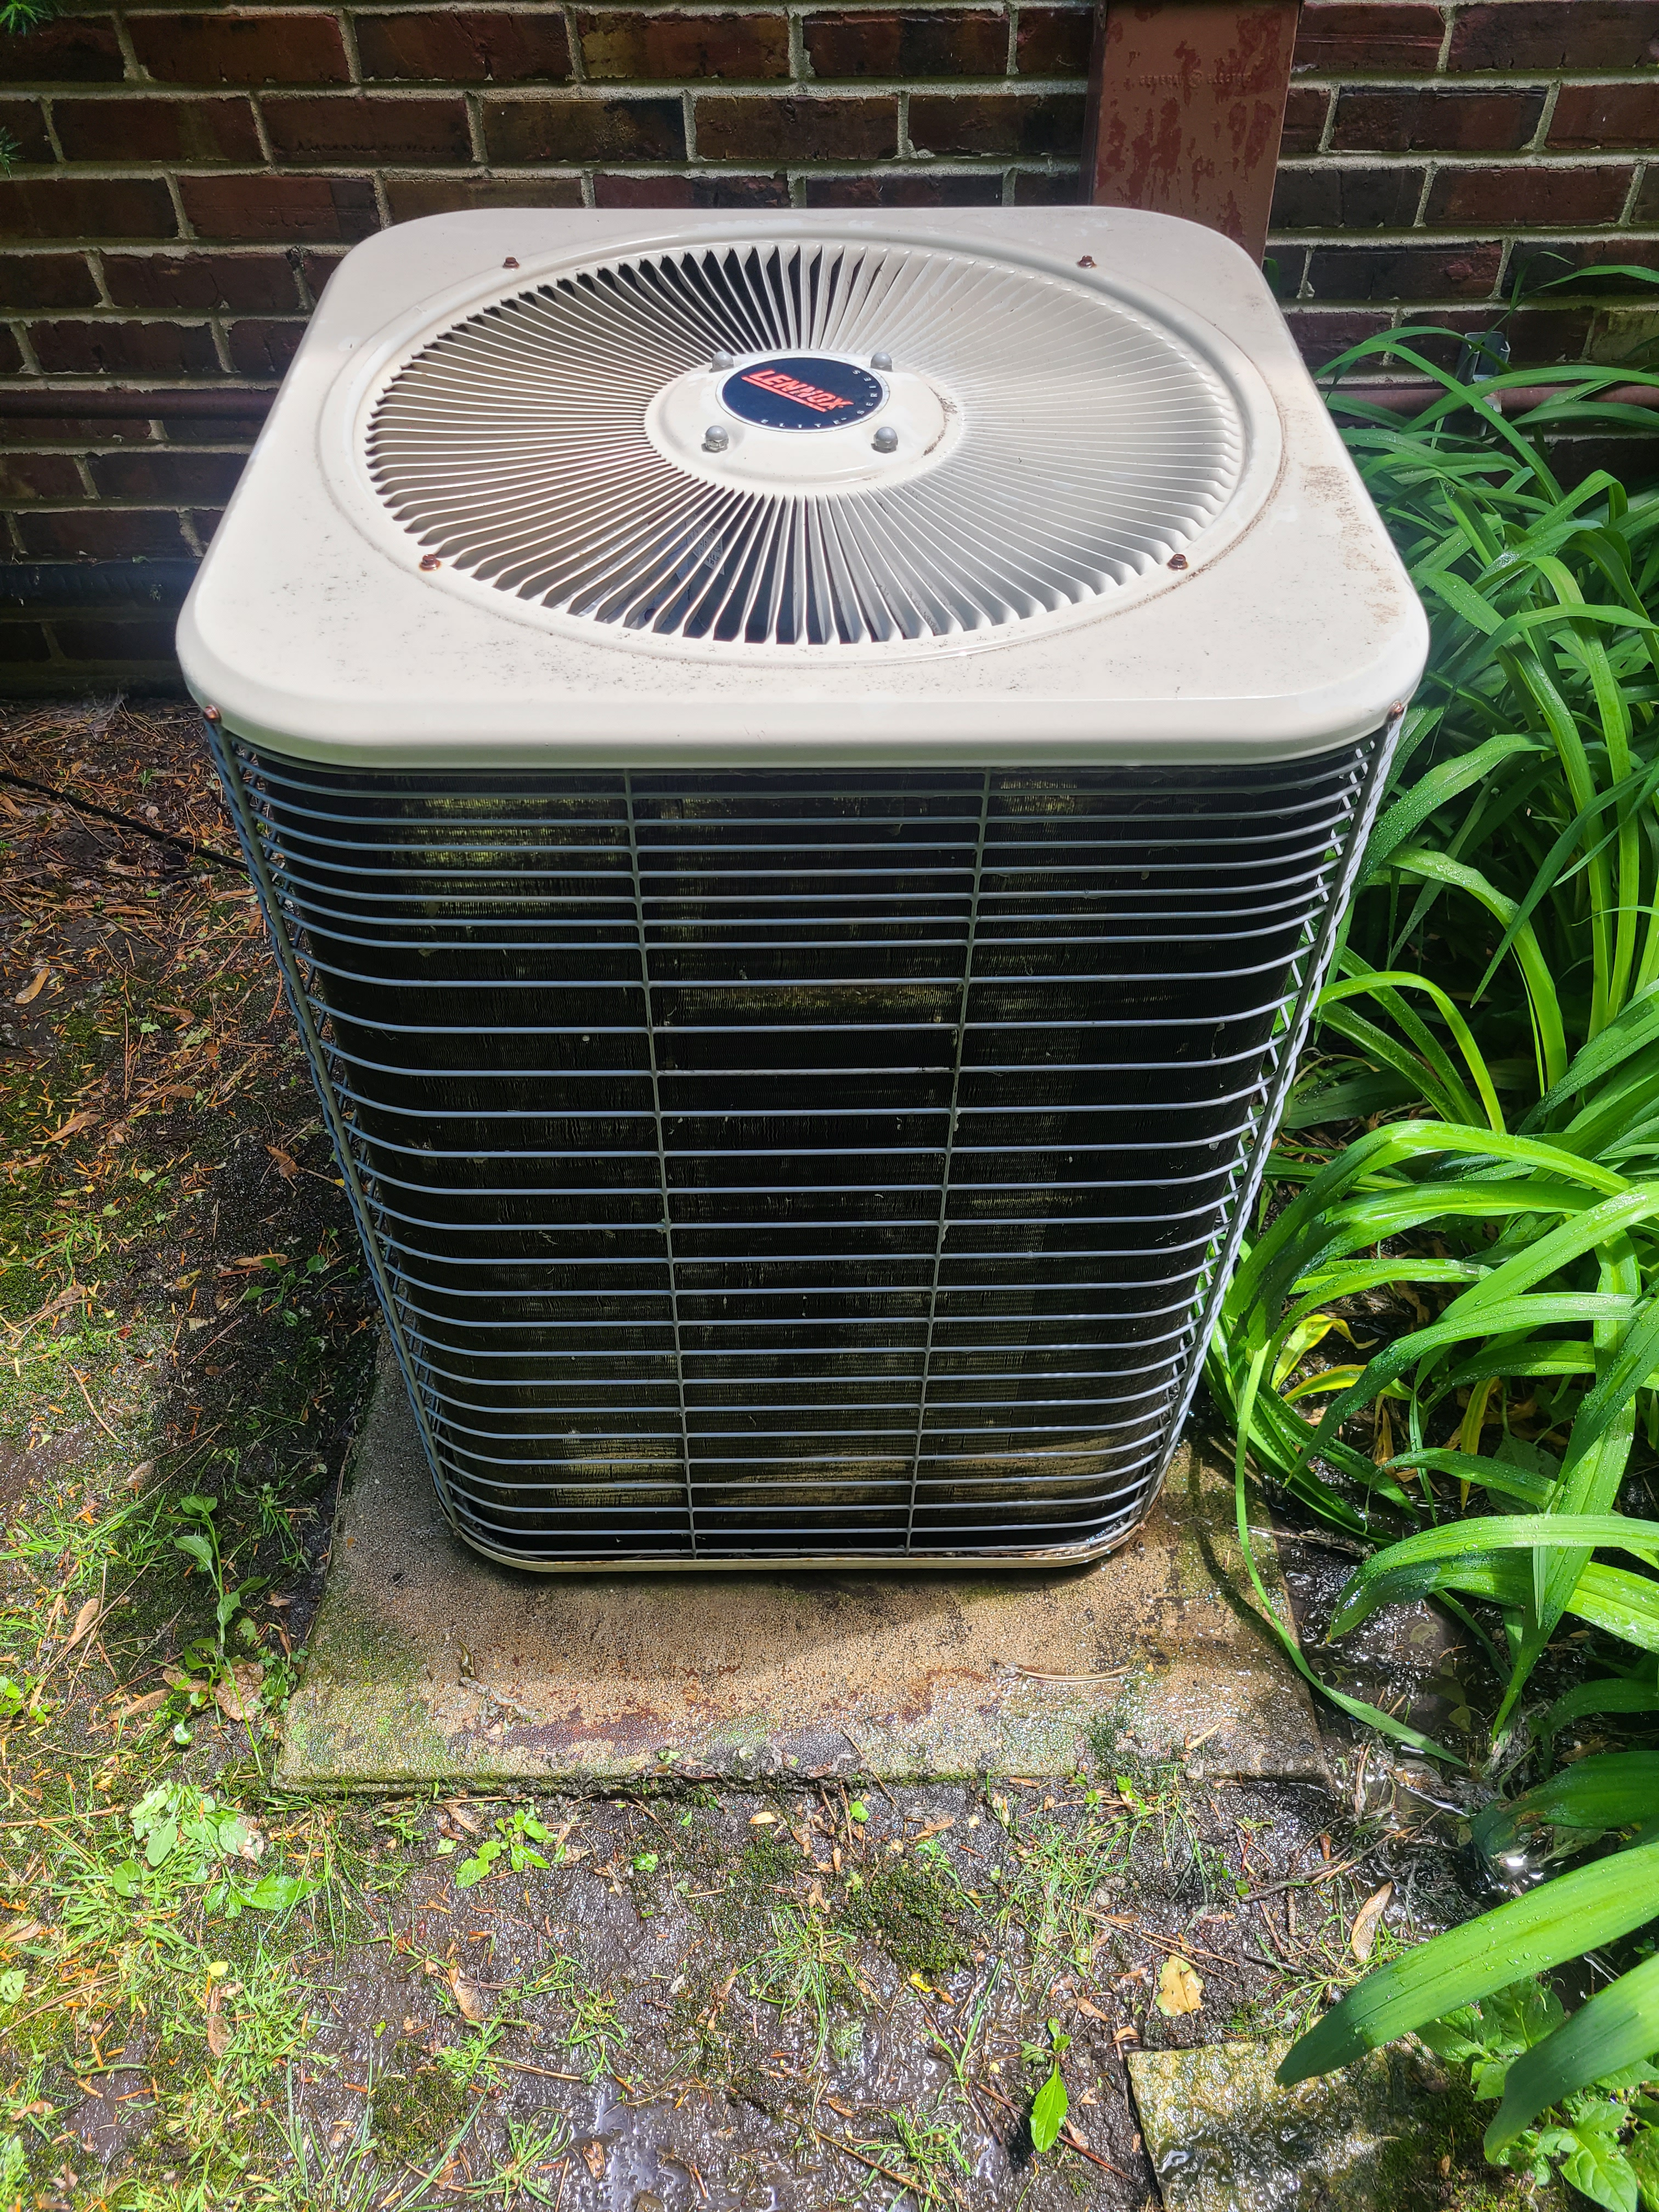 No cooling. Air filter completely plugged up and condenser coil plugged up on Lennox AC unit